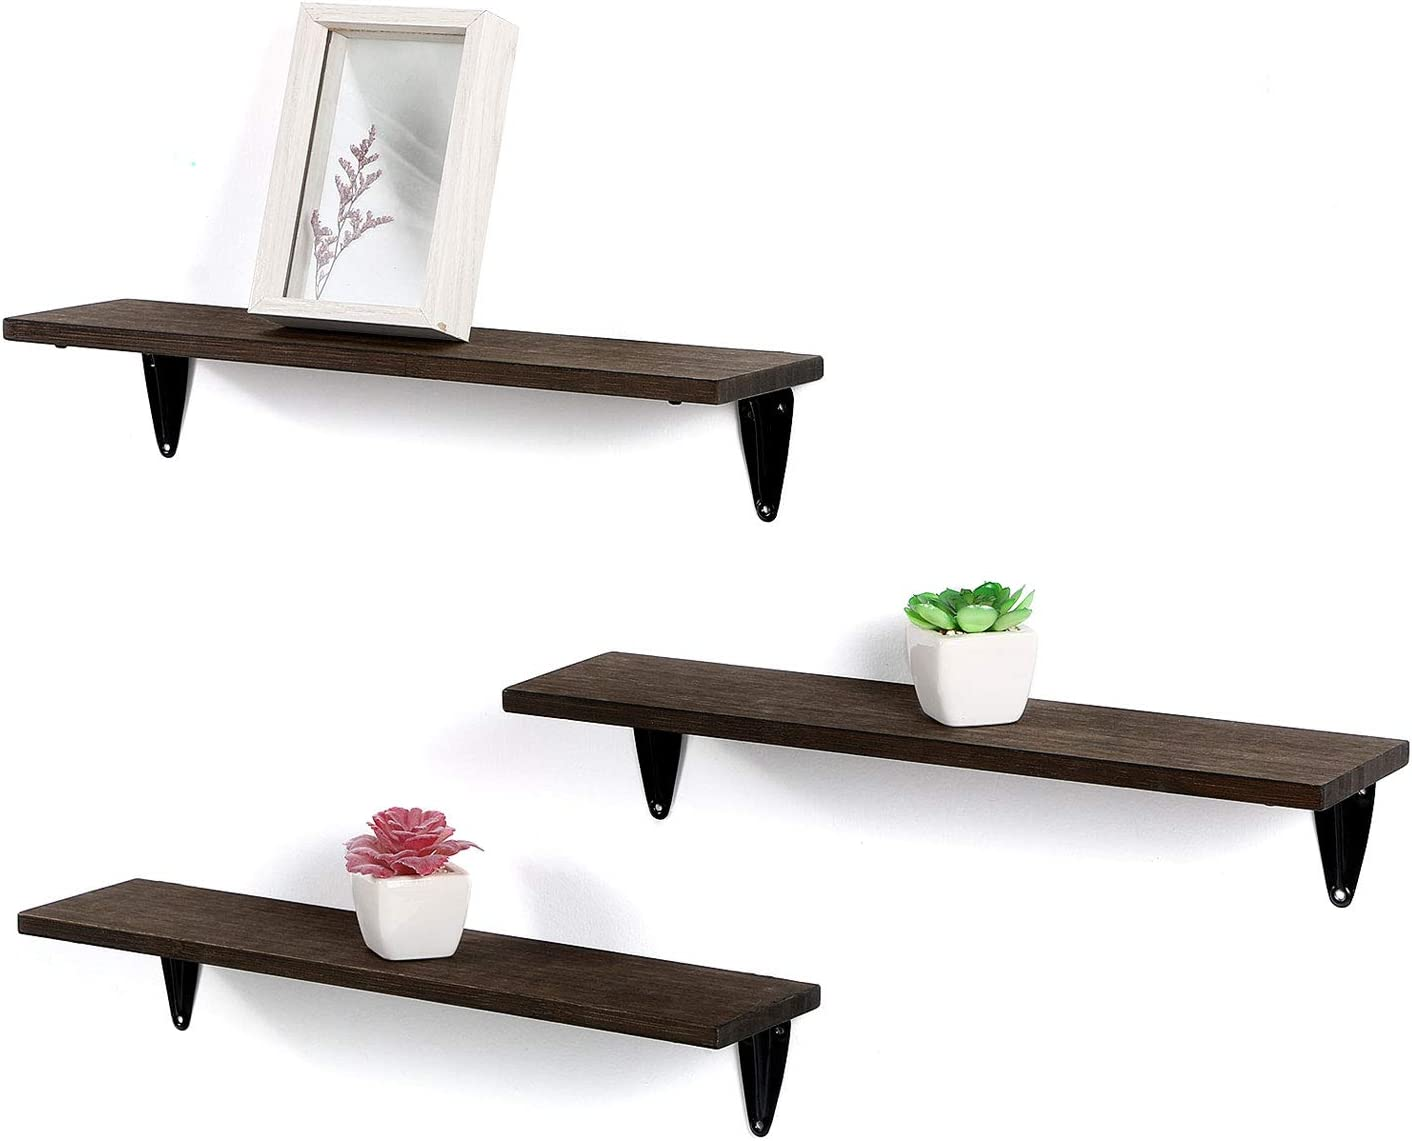 Dawan Floating Shelves, Natural Bamboo Wall Mounted Shelves Storage Display Shelf Decorative for Living Room Bathroom Kitchen Office Set of 3 Chocalate